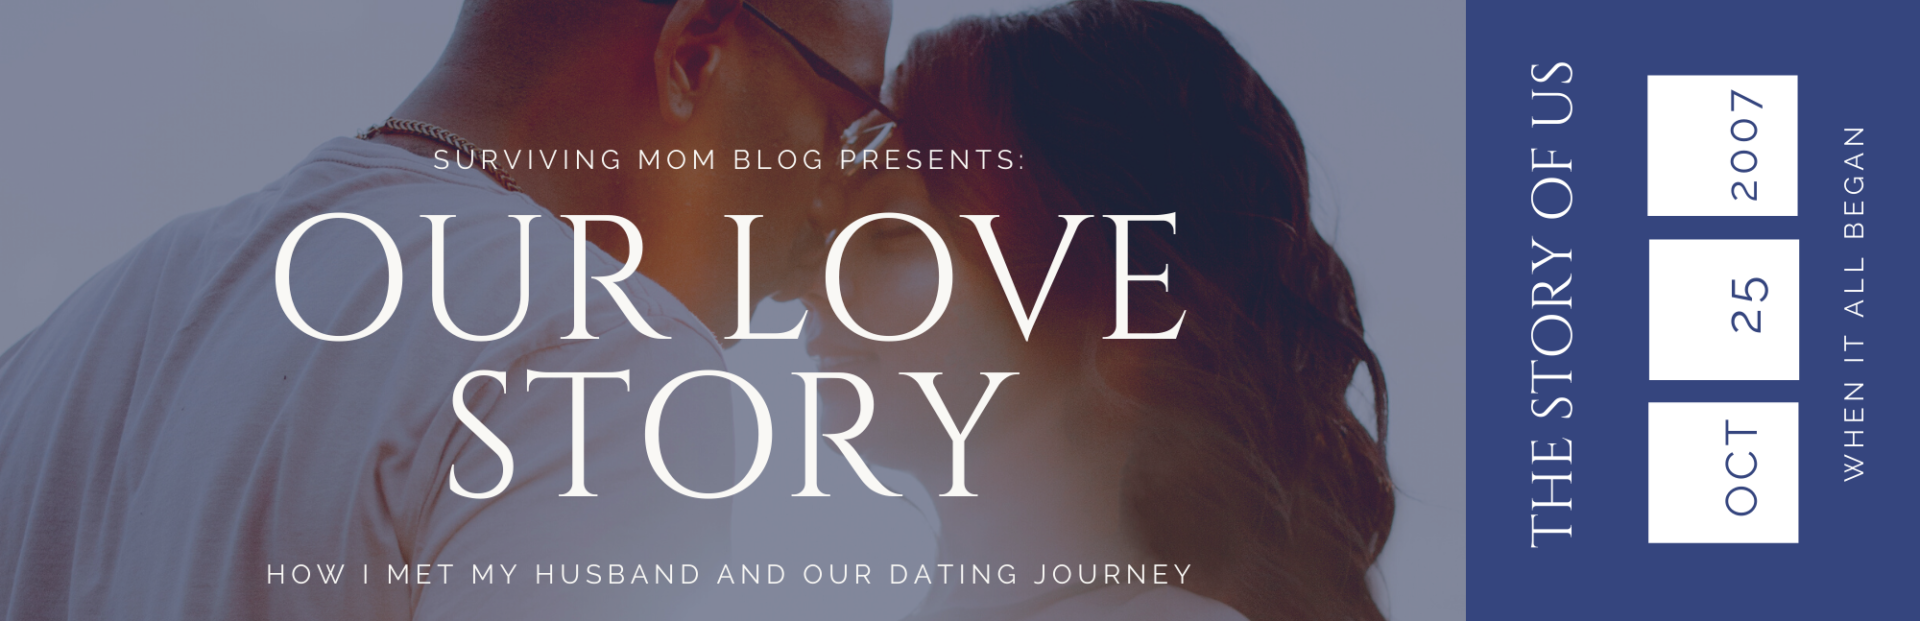 our love story - how i met my husband